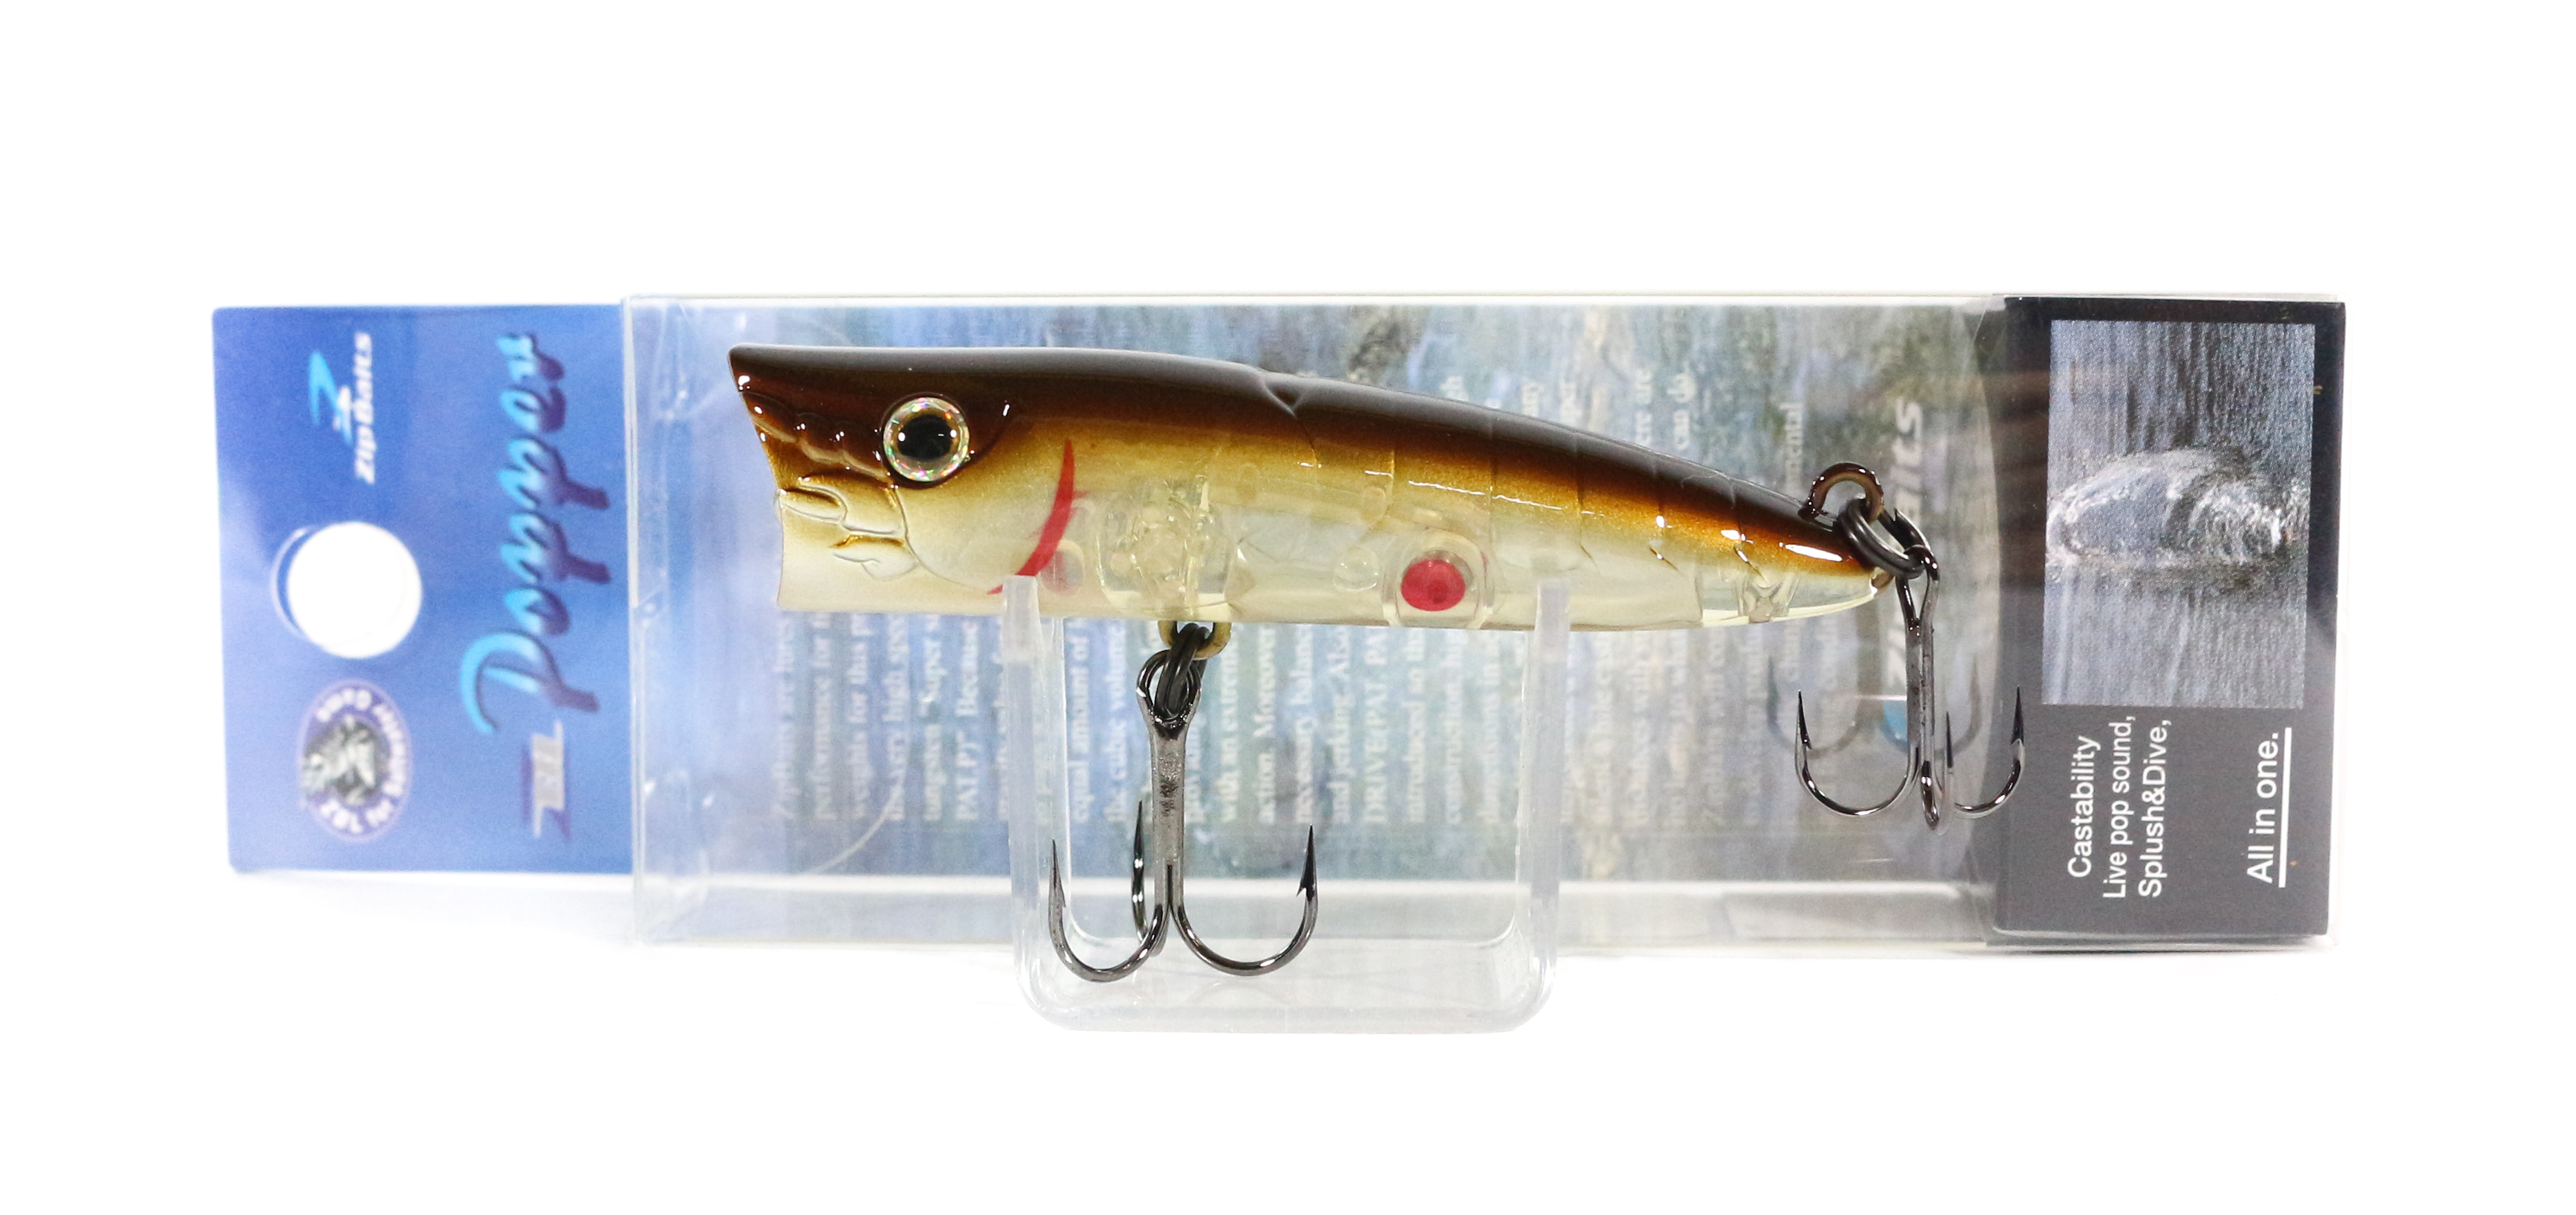 Sale Zipbaits ZBL Popper 68mm Floating Lure 541R (6077)